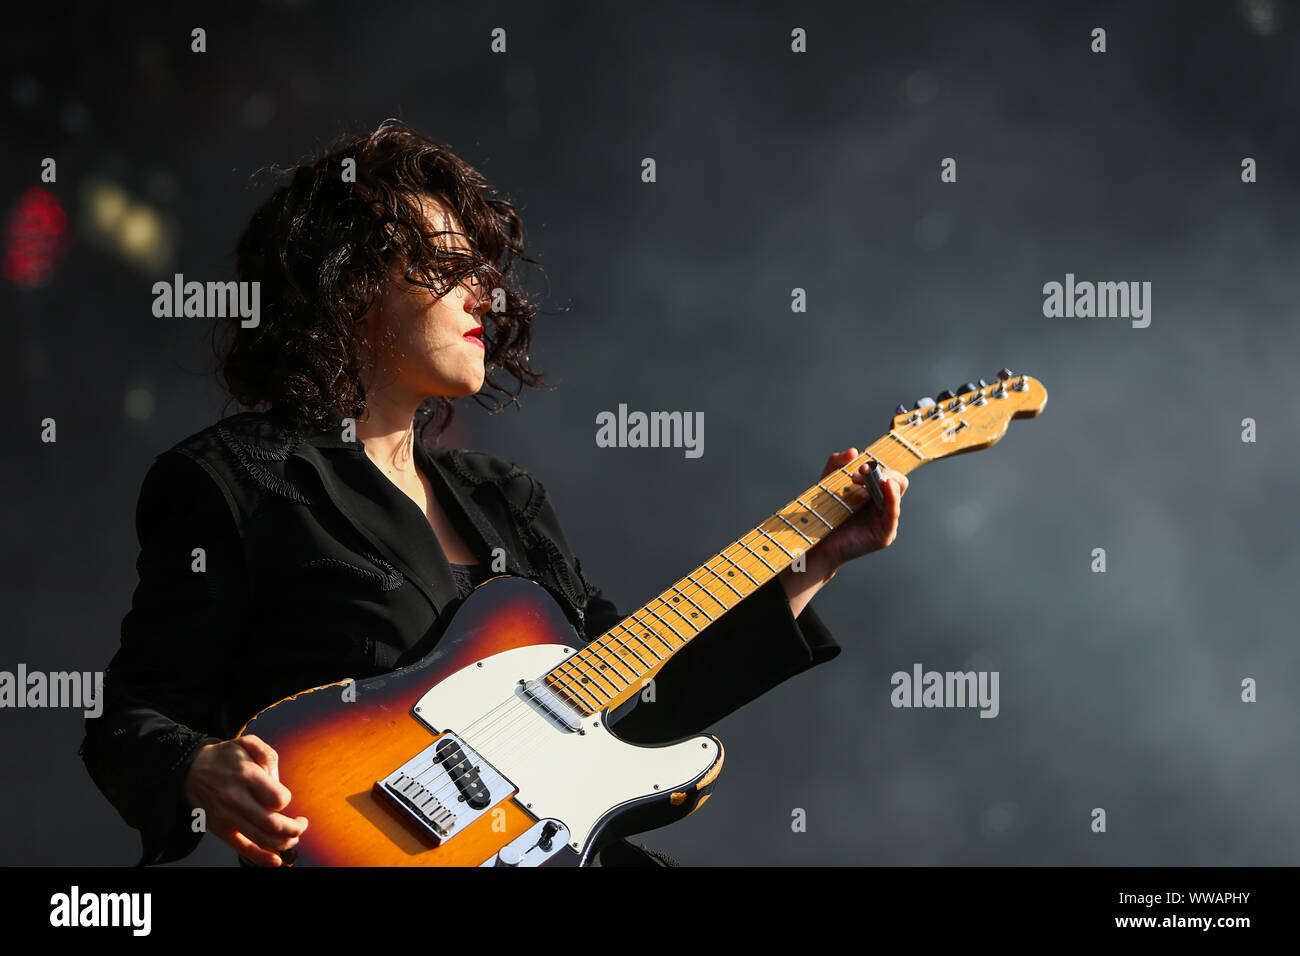 Birmingham, UK. 14th Sep, 2019. Singer and guitarist Anna Calvi appears on stage Stock Photo